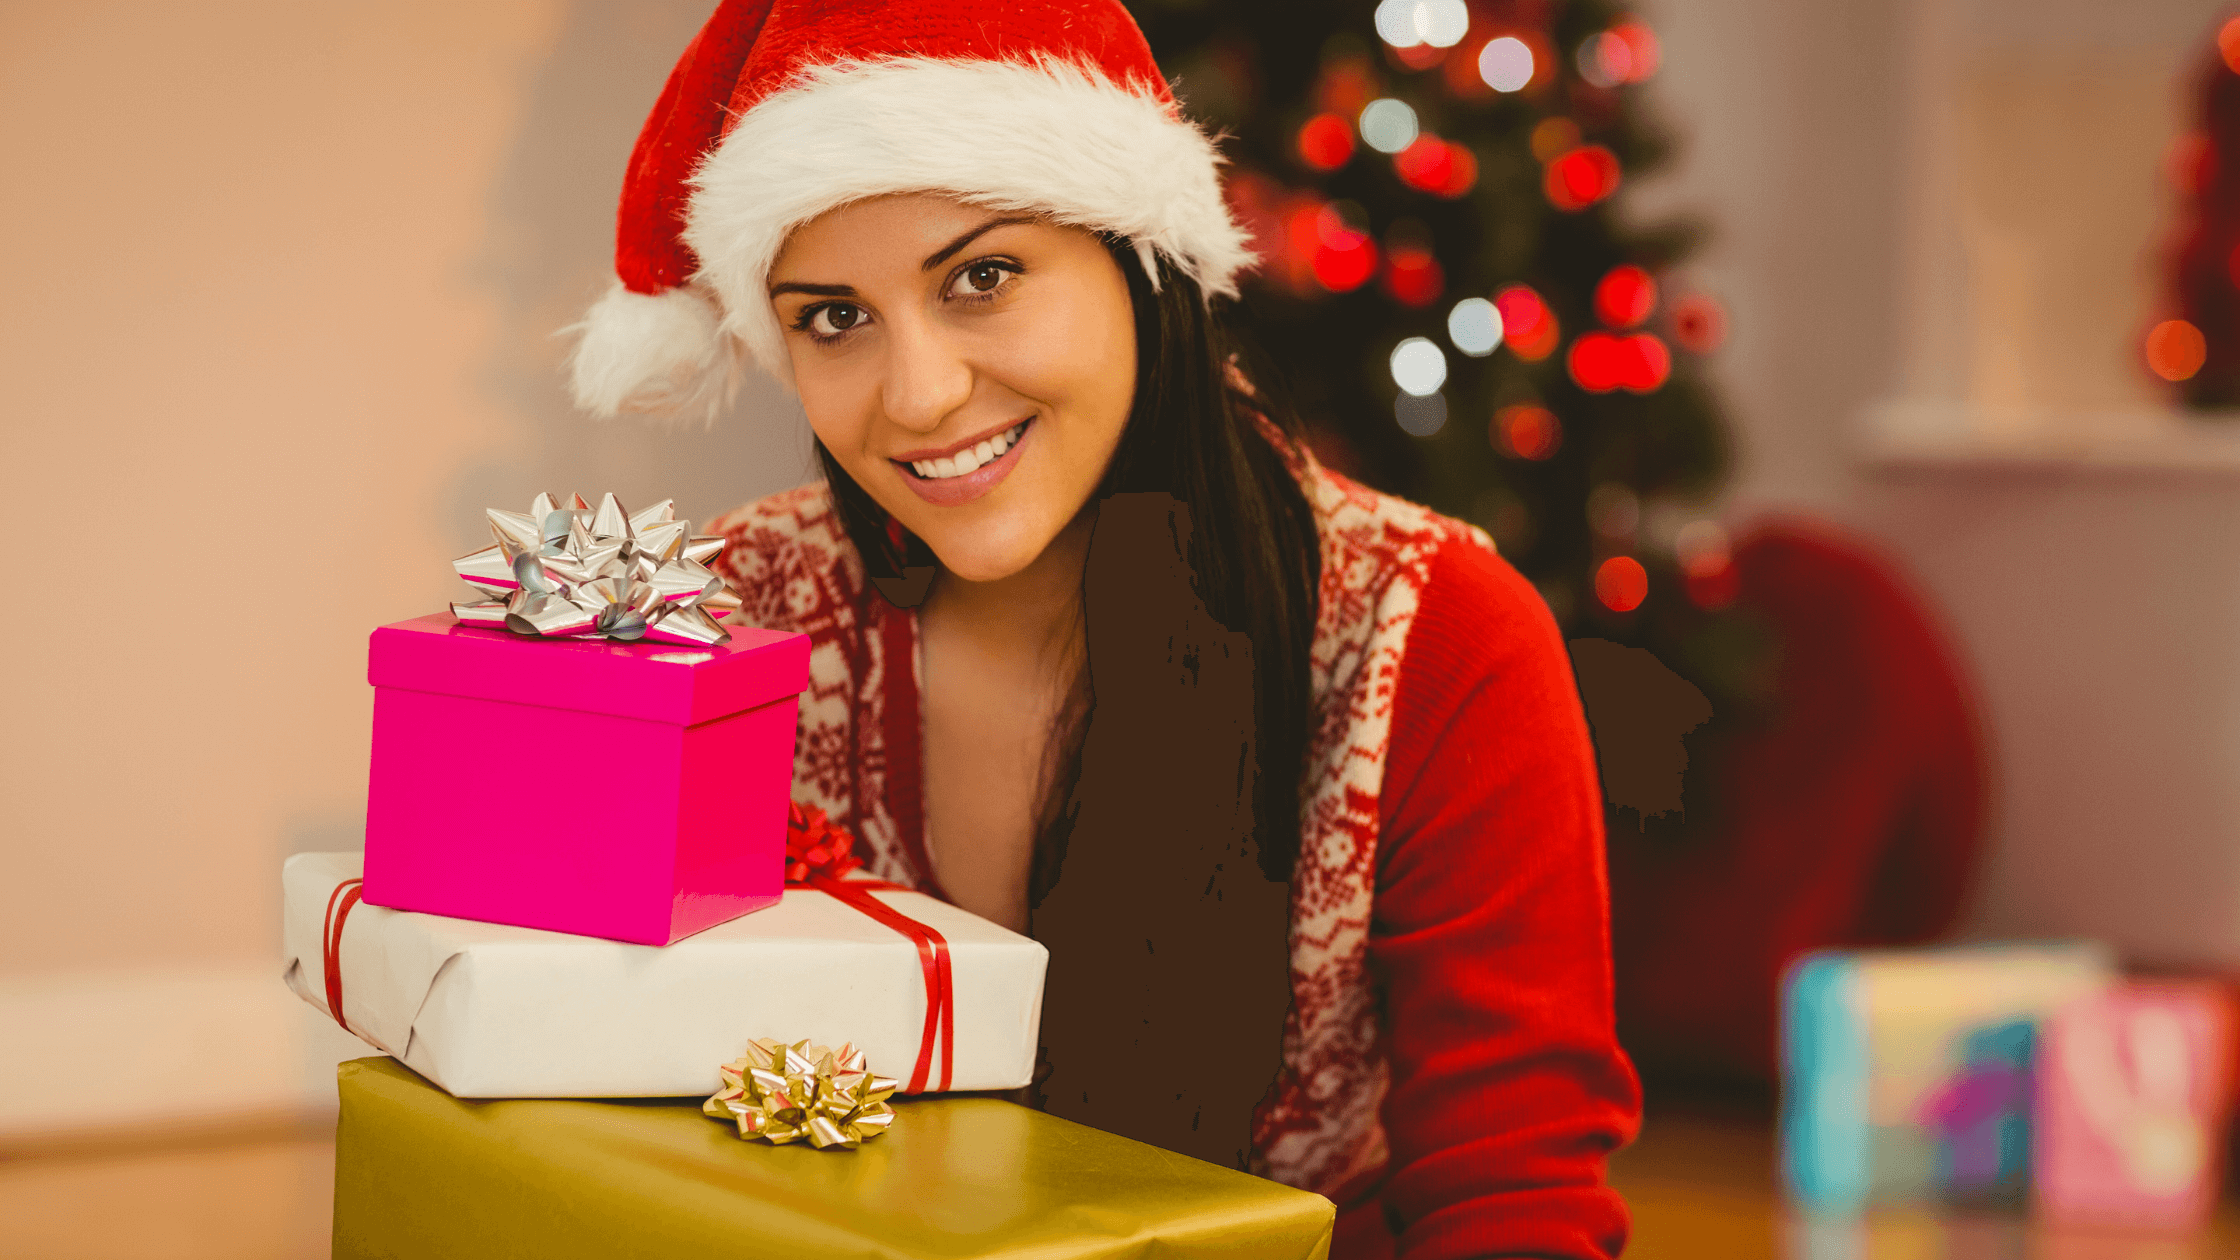 Taking care of your teeth over the festive season